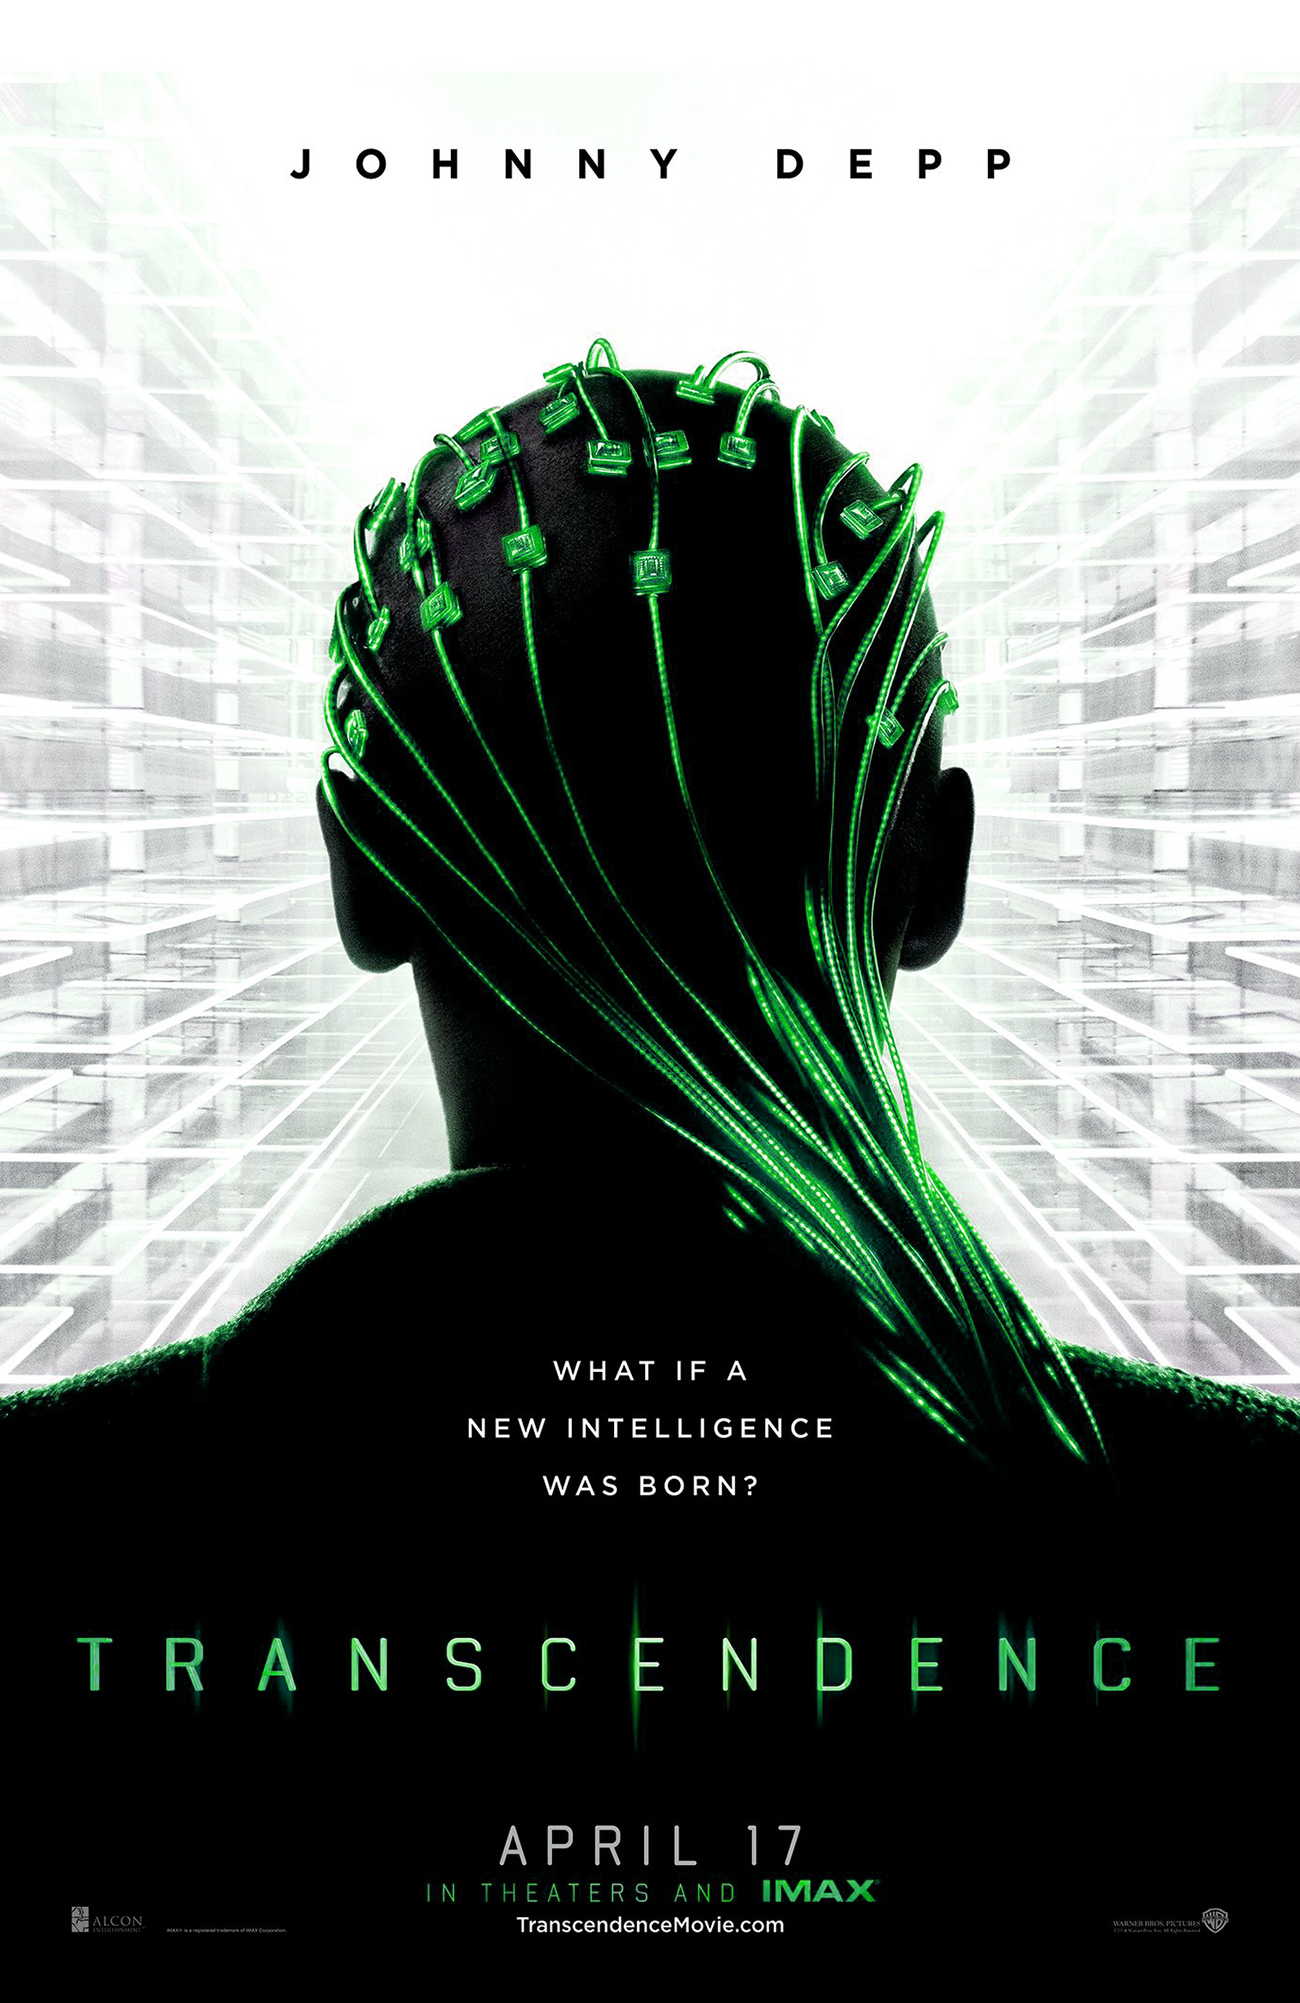 transcendence-movie-poster-greenwire